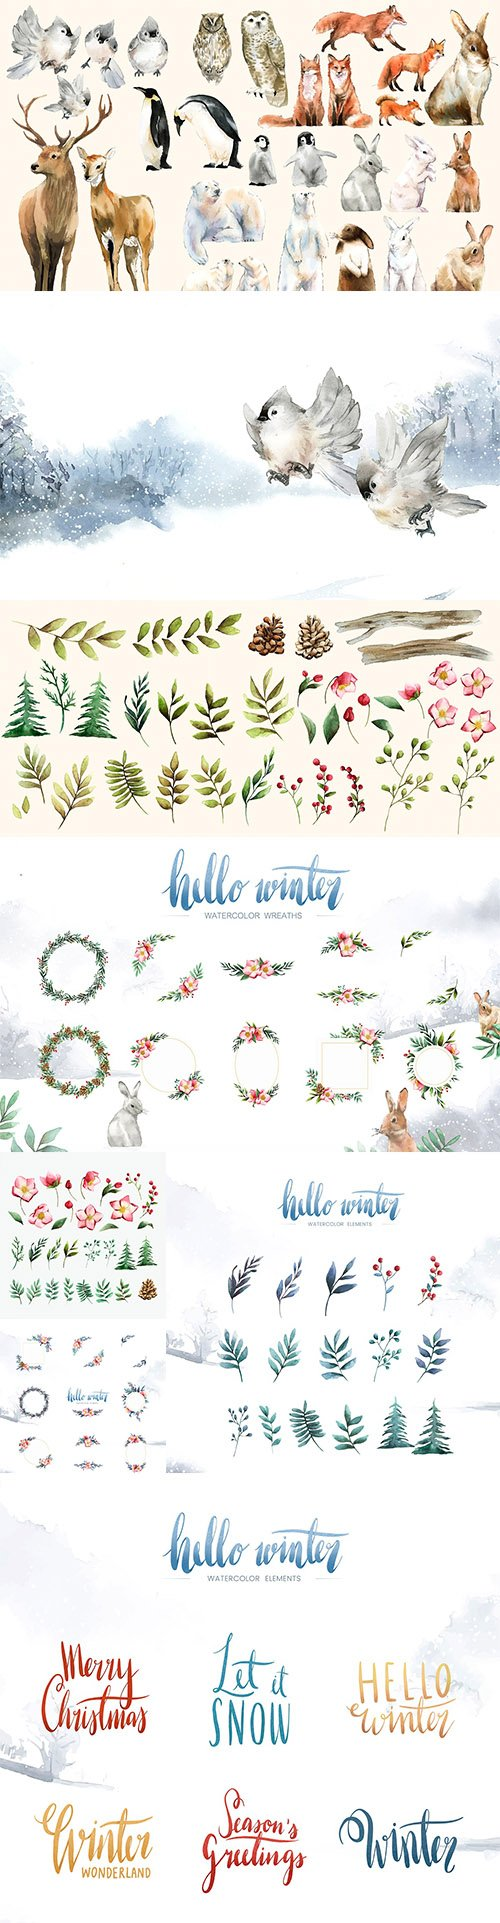 Winter Hand-Drawn Wildlife Watercolor Bloom and Elements Vector Collection